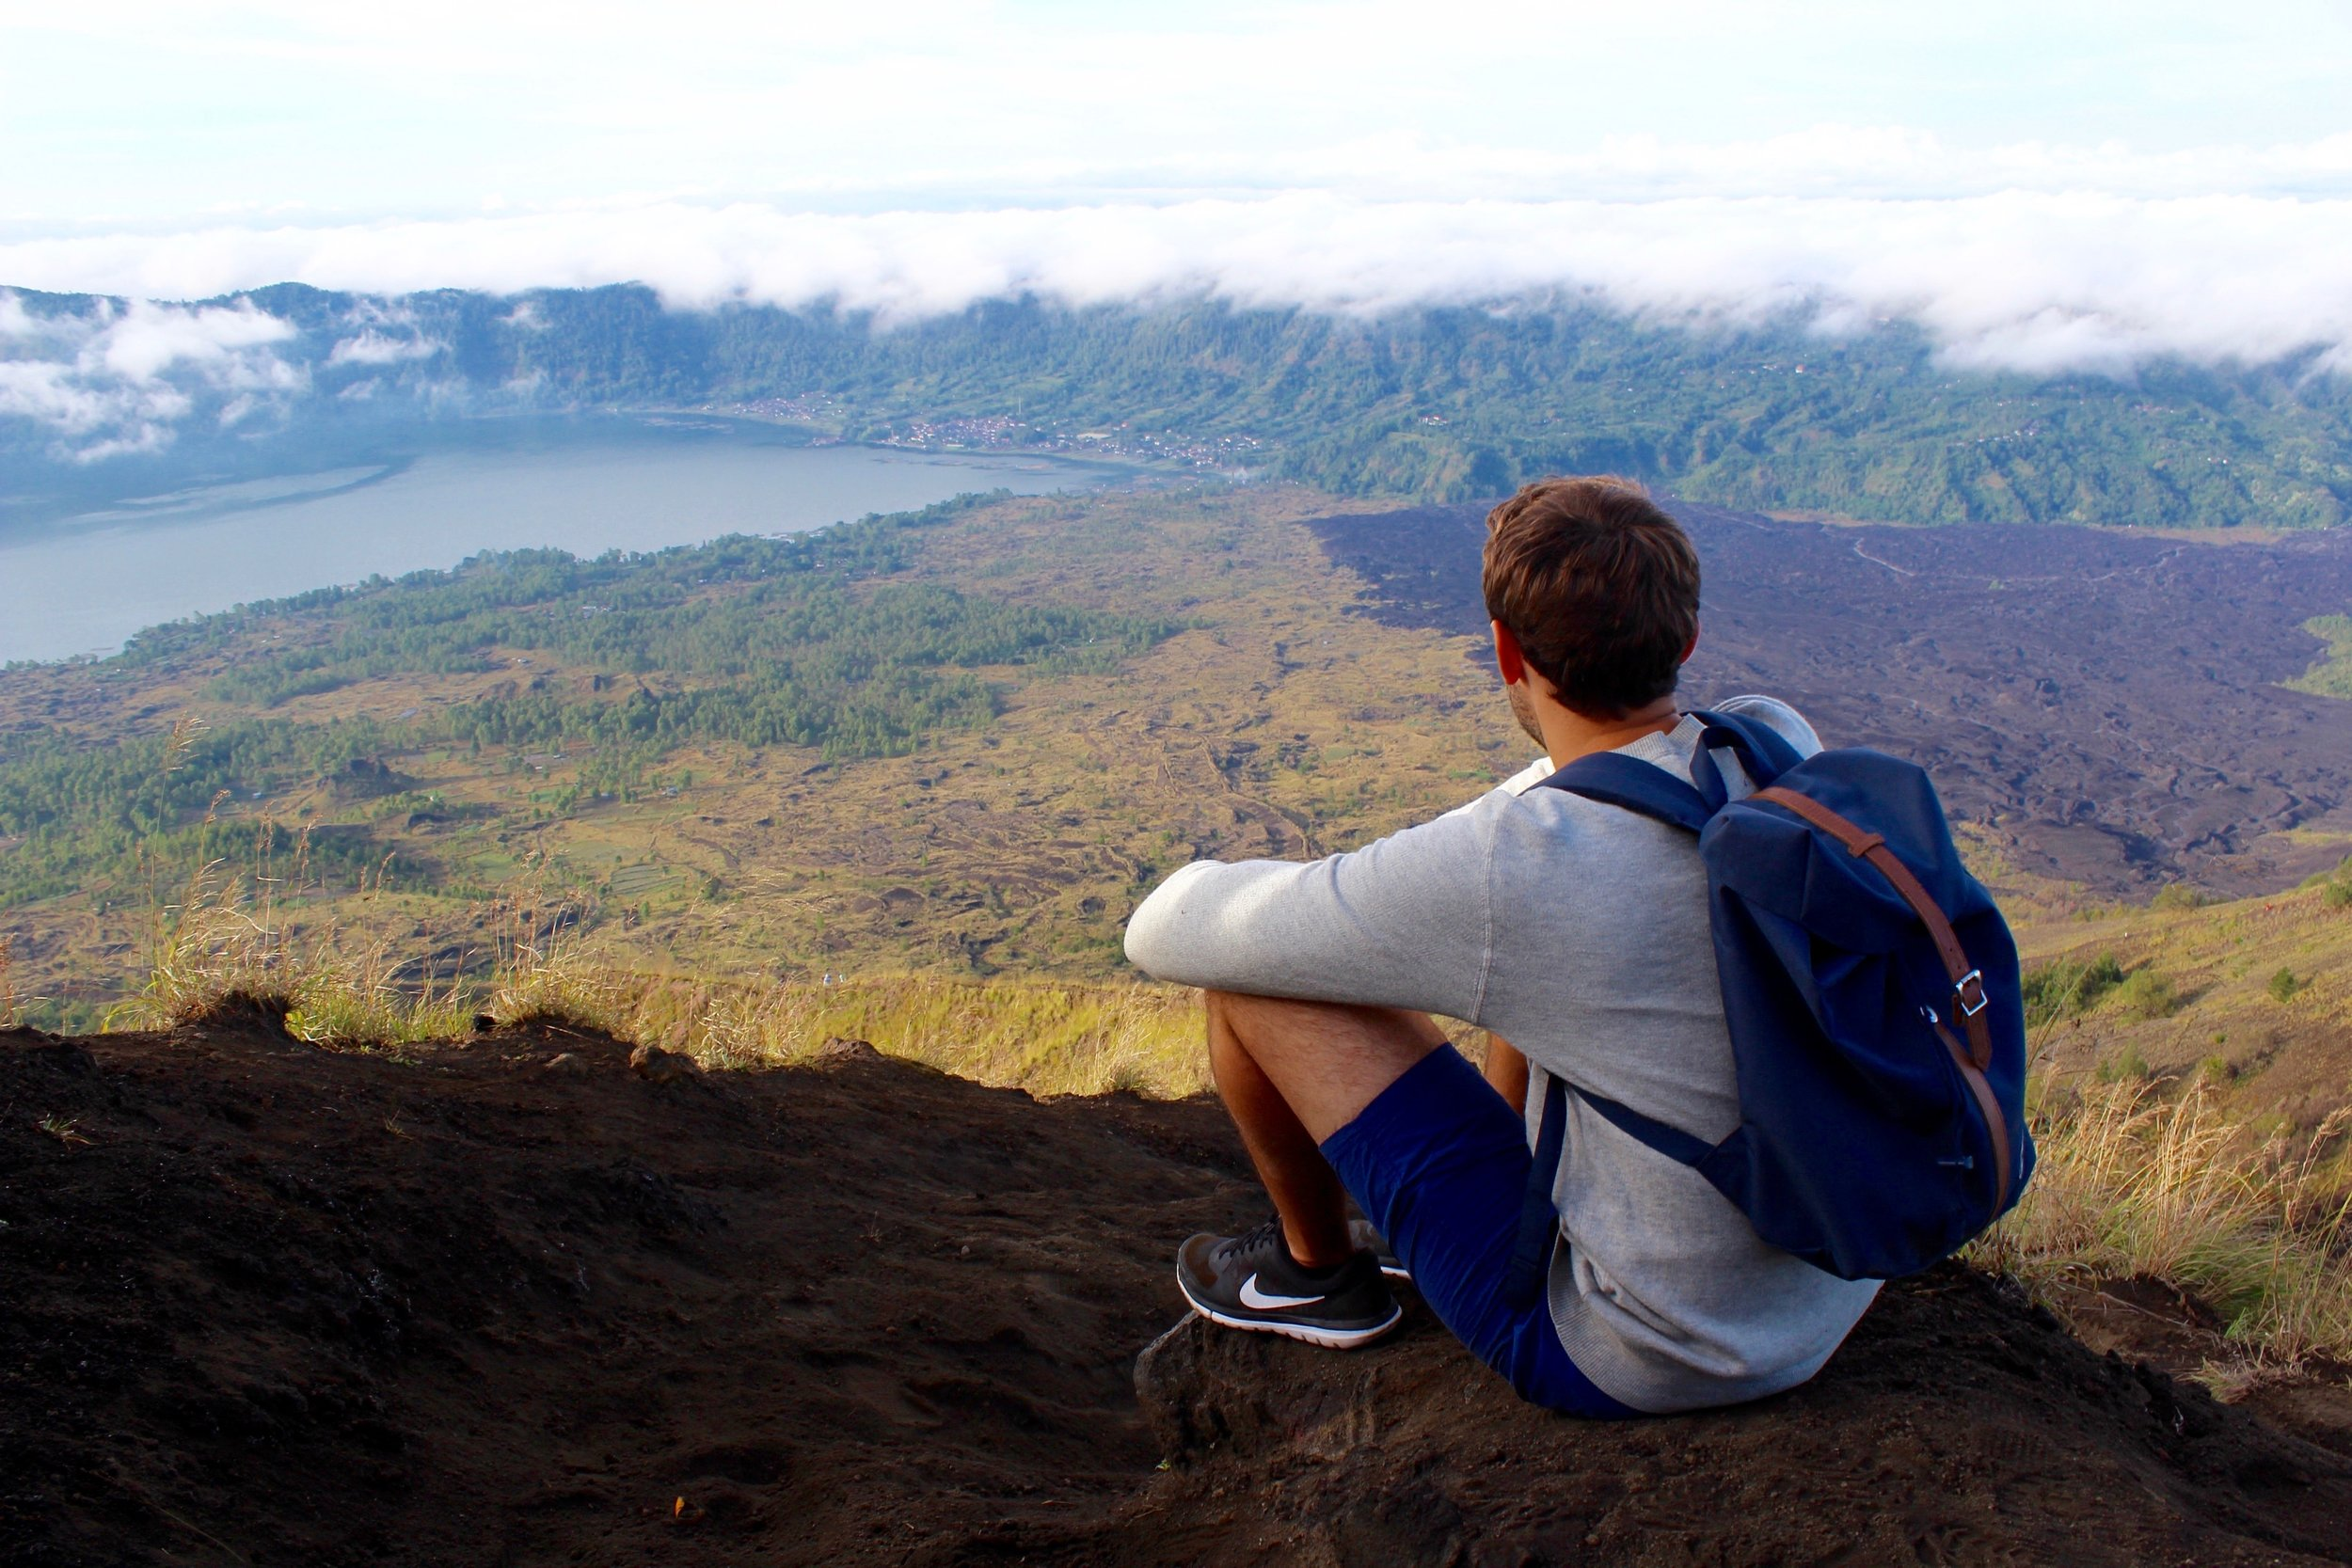 Descending Mount Batur, Indonesia